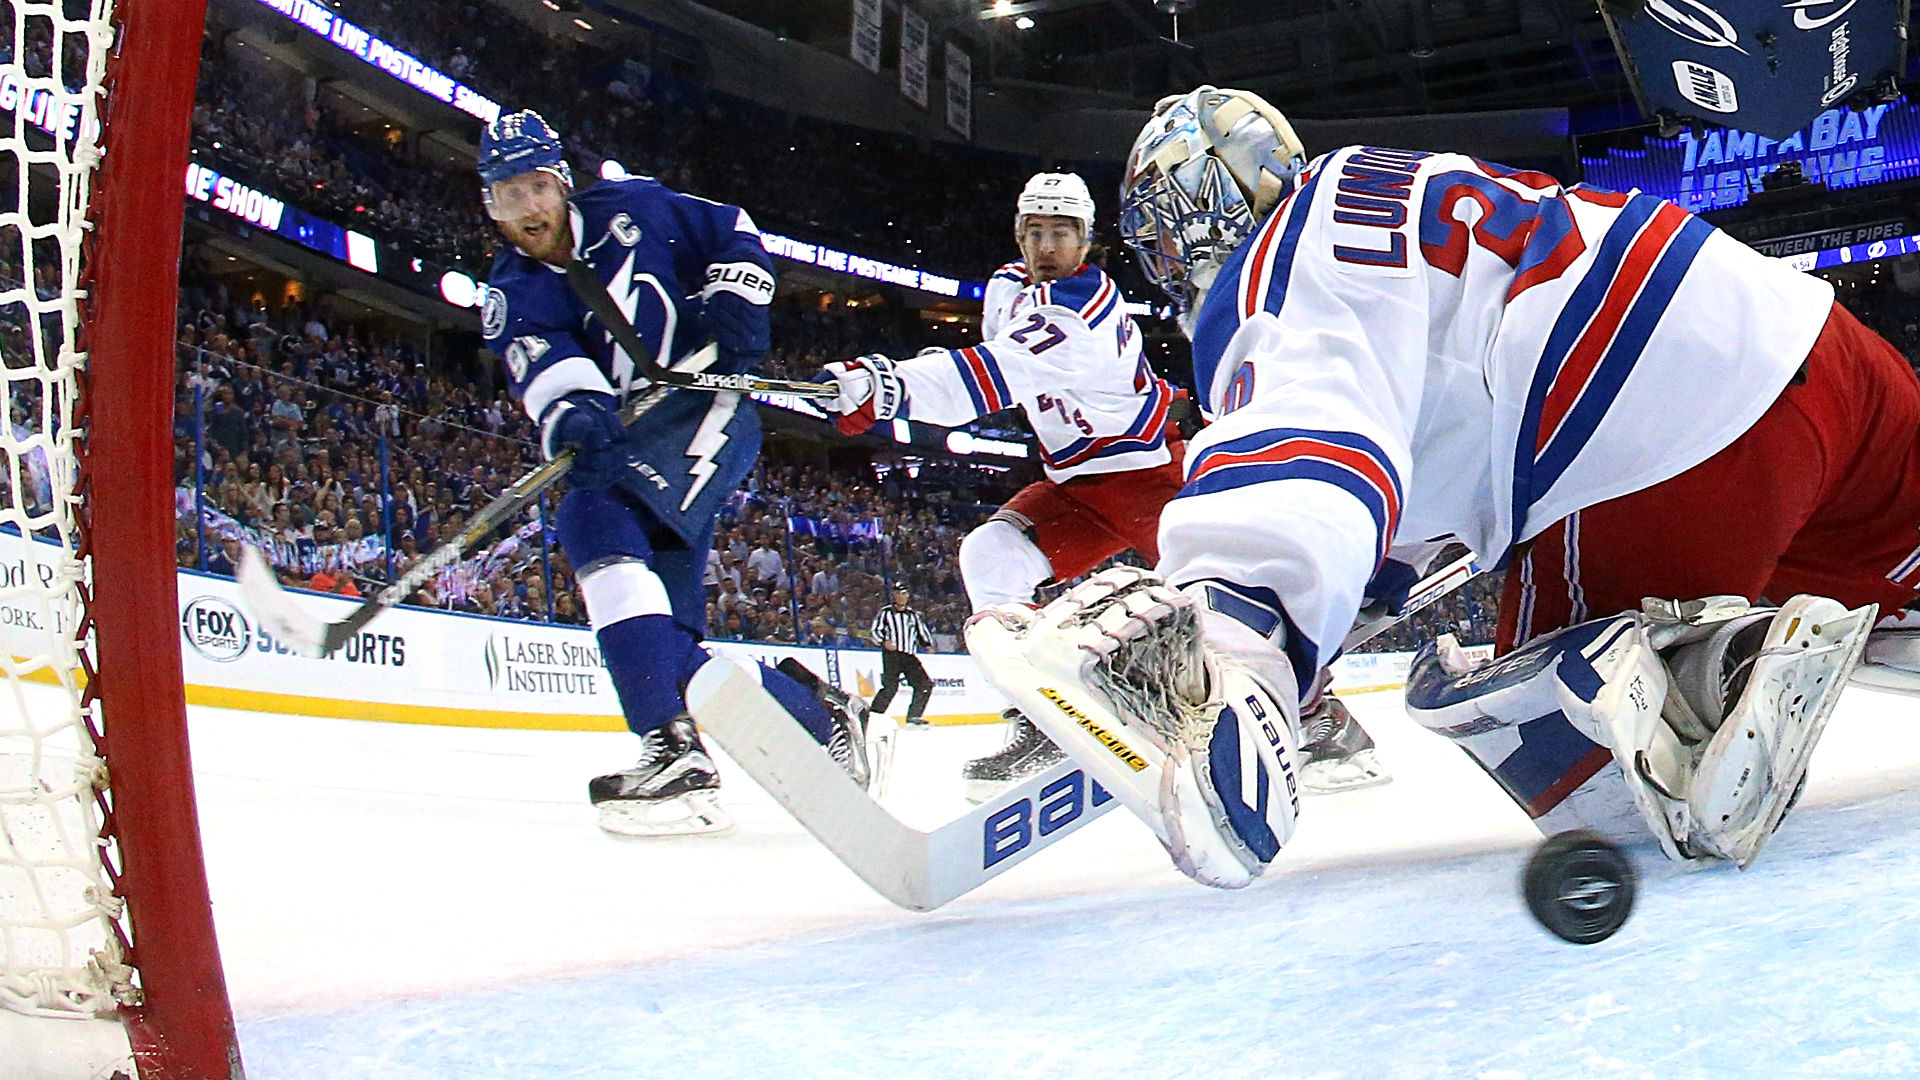 Rangers vs. Lightning Game 4 — New York's lost identity